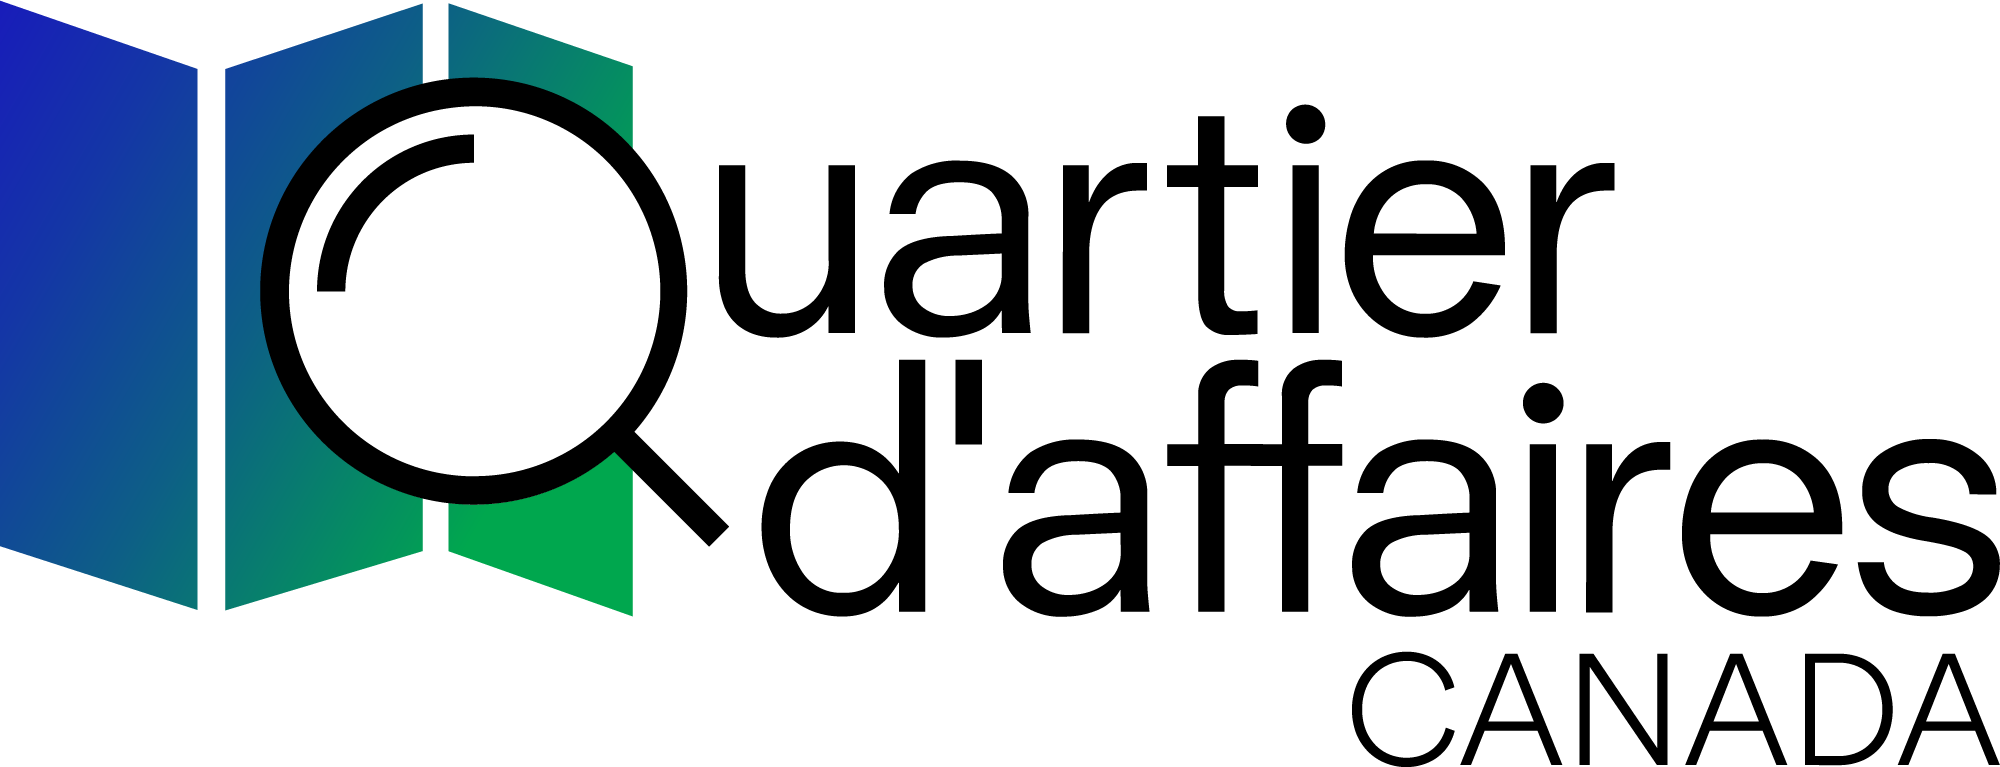 Quartier d'affaires